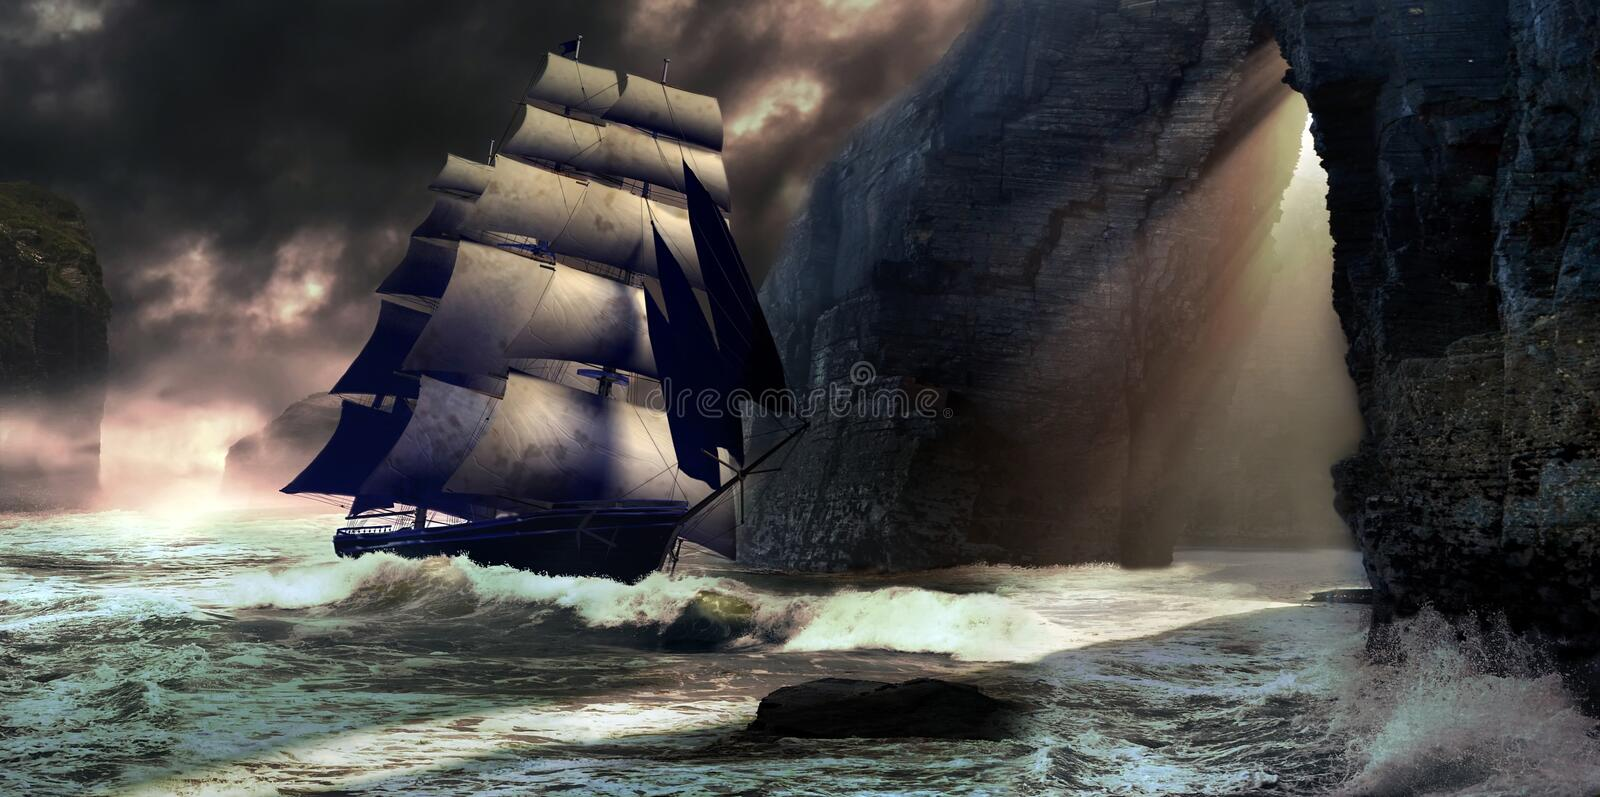 Heaven's gate. A sailing sailboat on an unsettled sea, under clouds, near the high cliffs of the coast, arriving of the darkness, is to enter by an opening